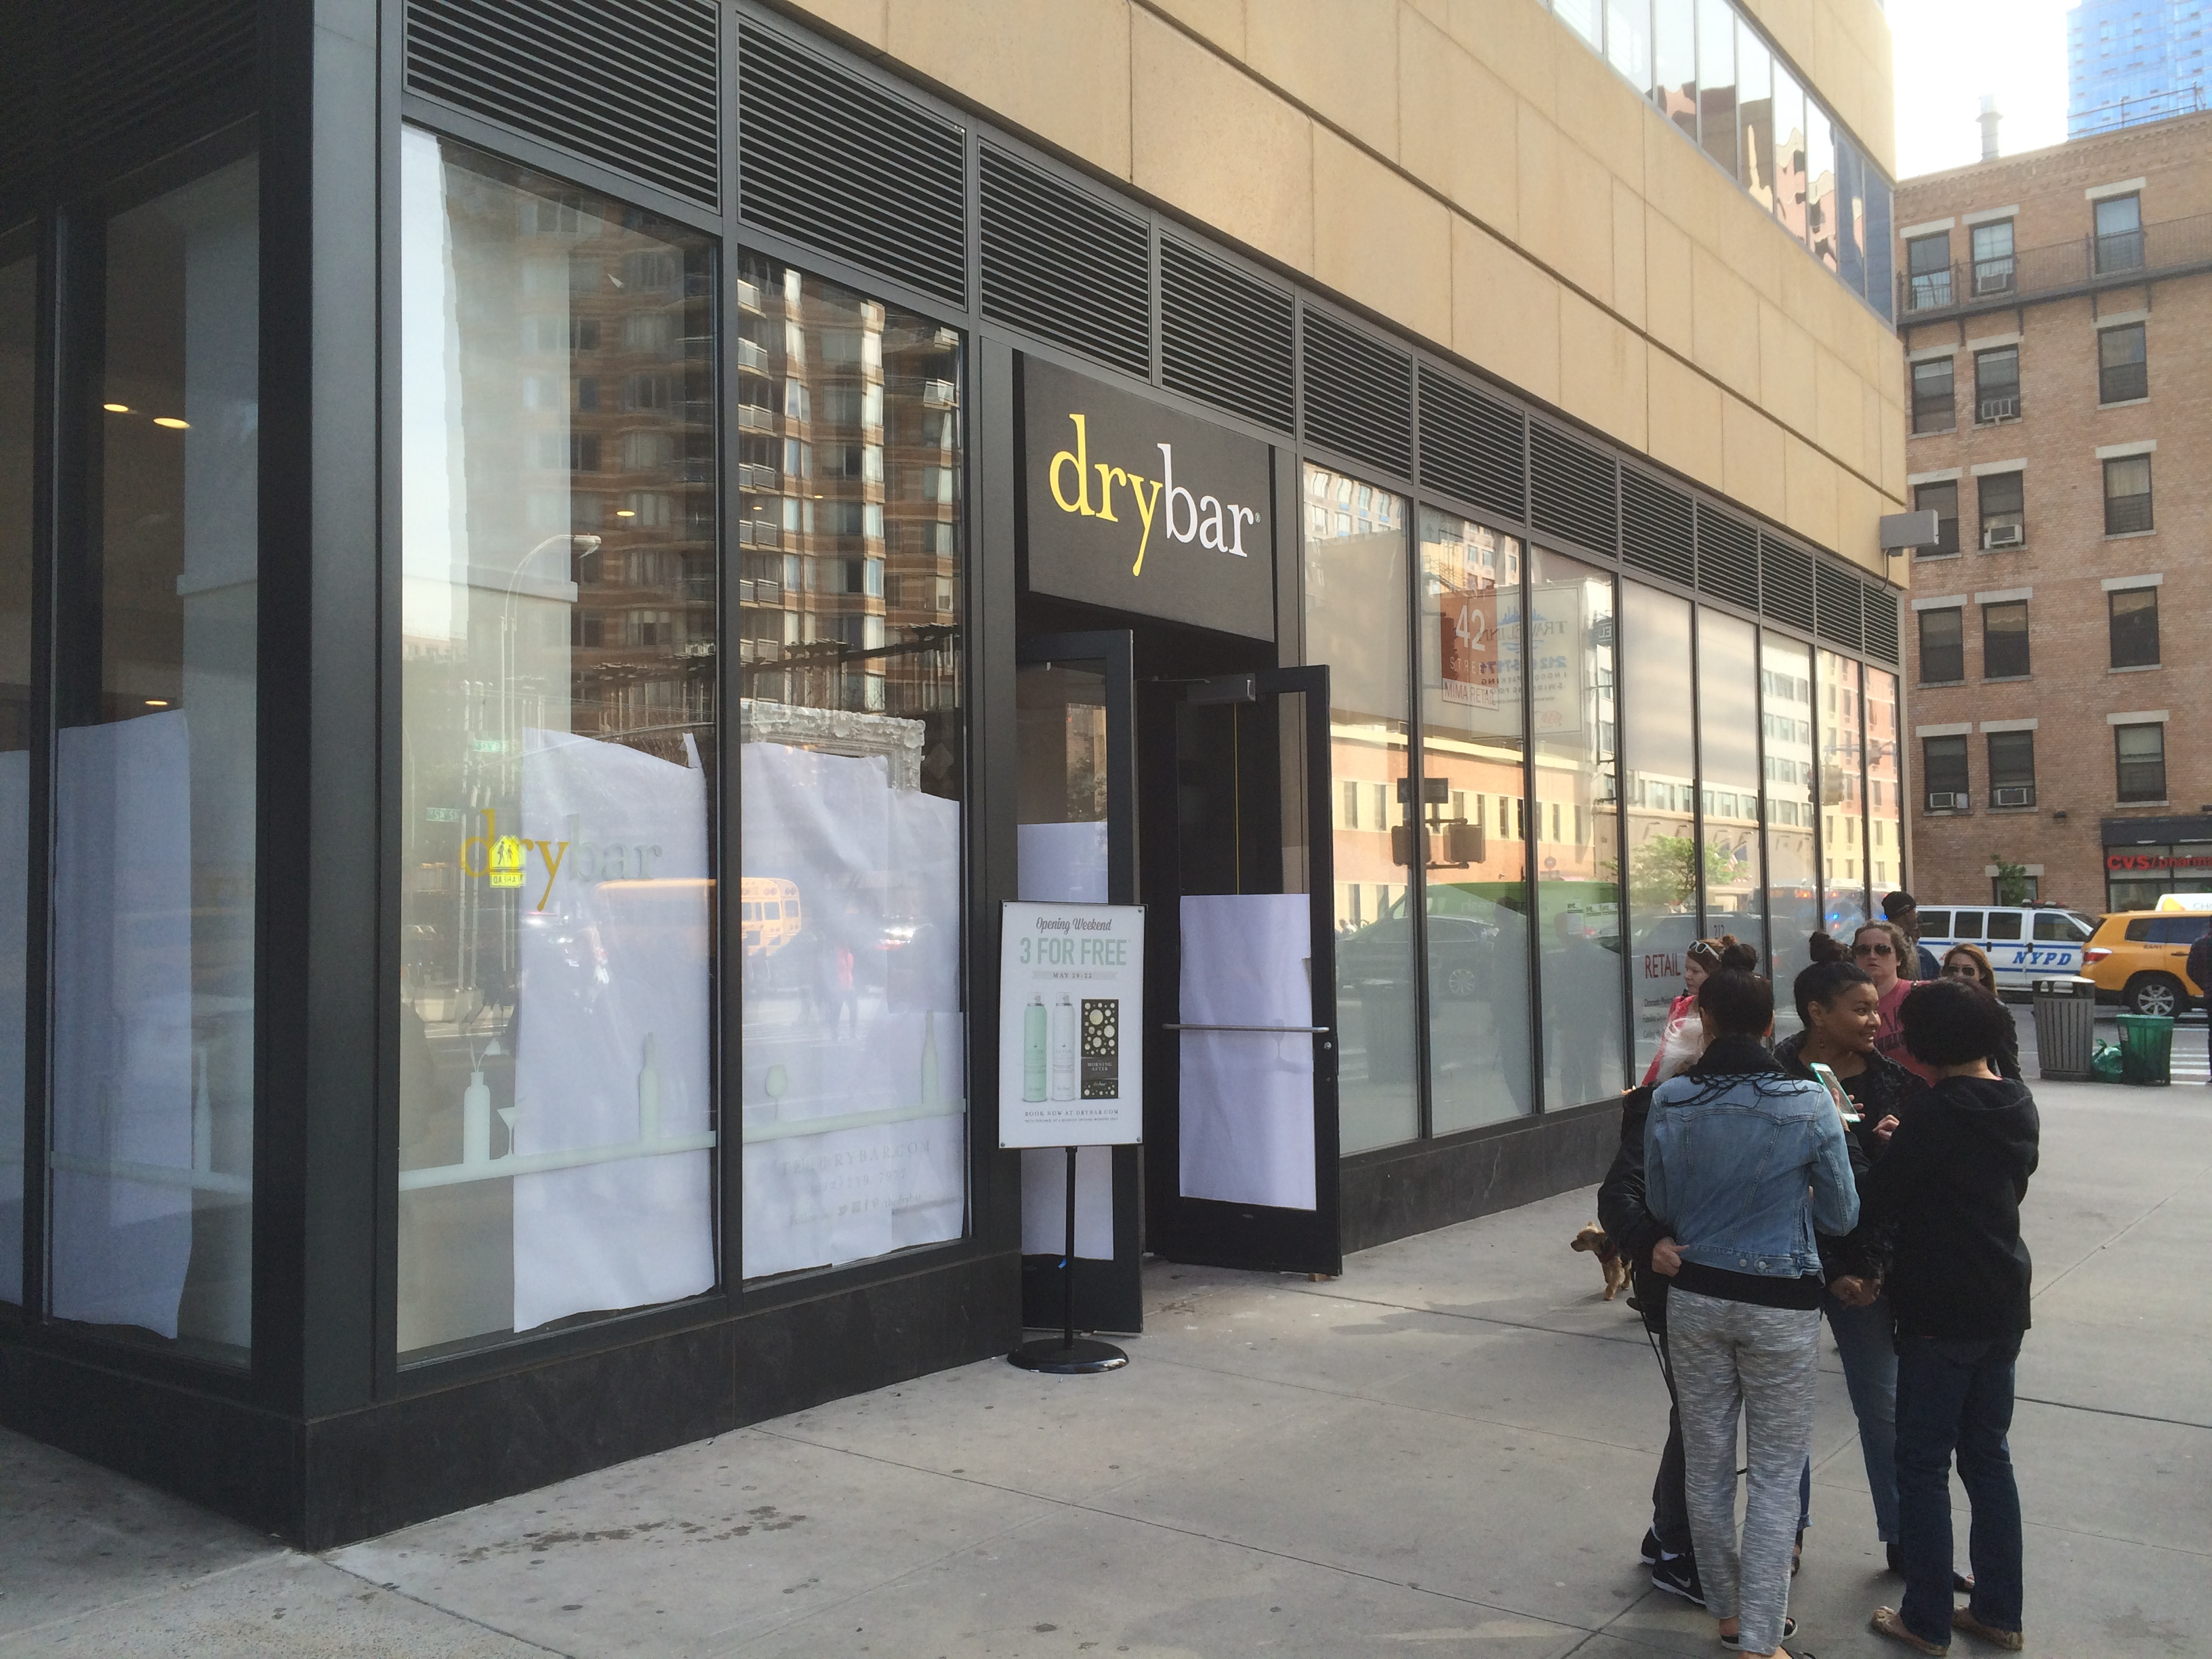 The Dry Bar – Mima Bldg., 42nd st. NY